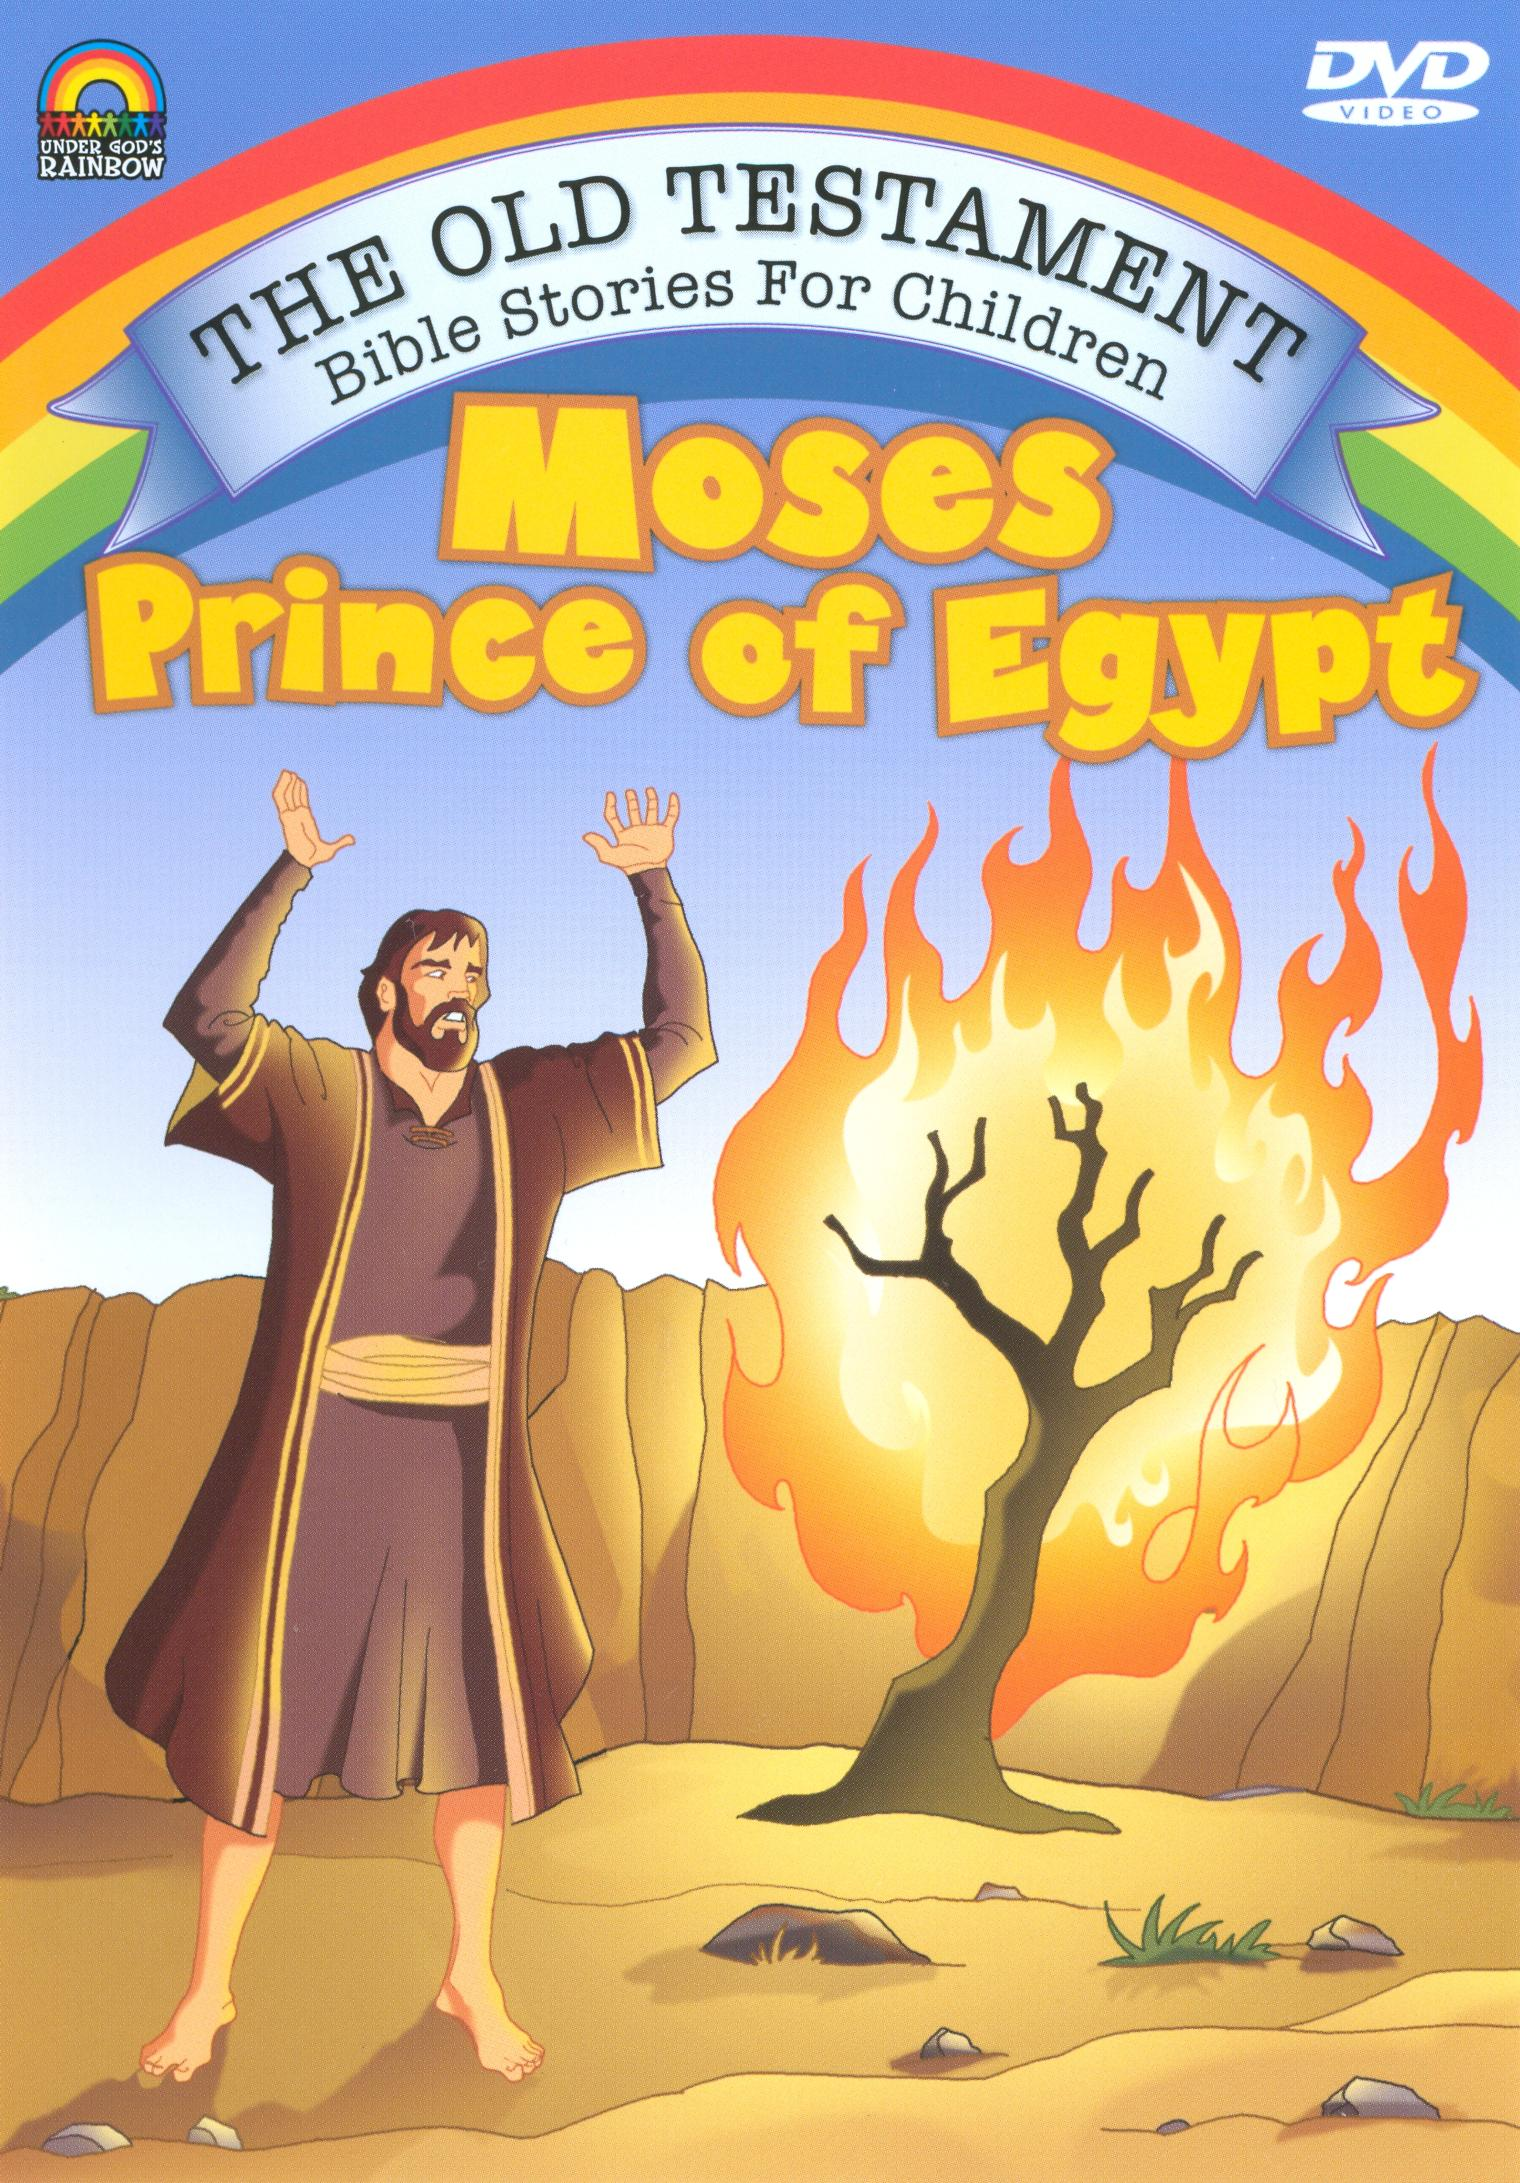 Price of egypt relation to bible